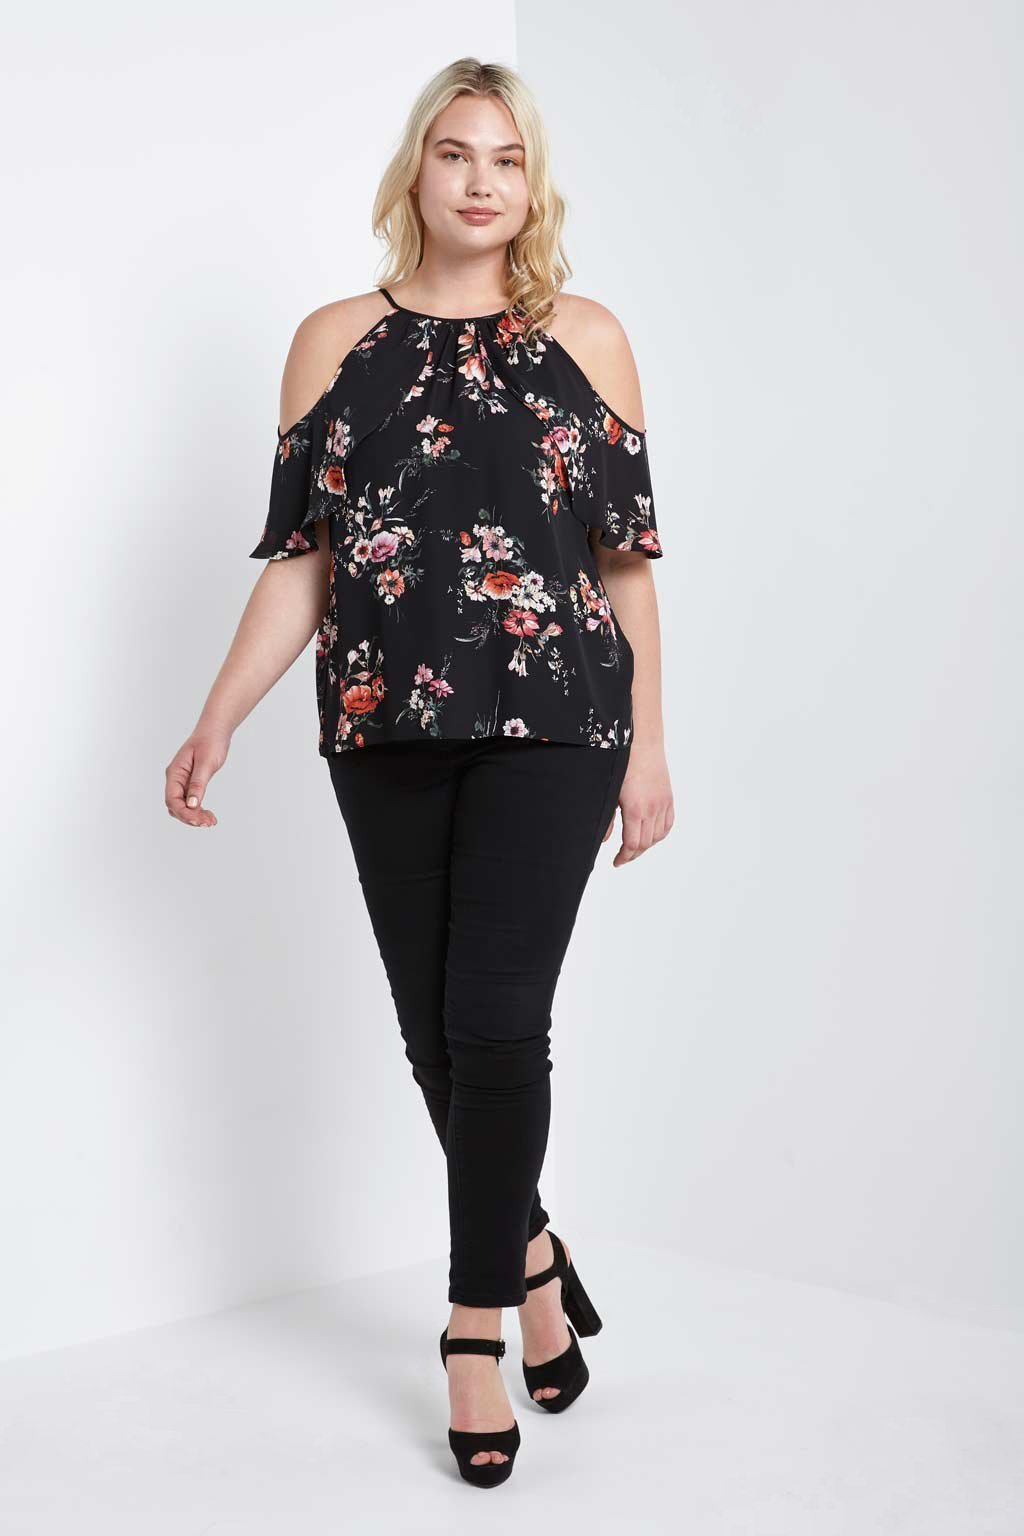 Poshsquare Plus 1XL / Black Floral Open Shoulder Top Plus Size